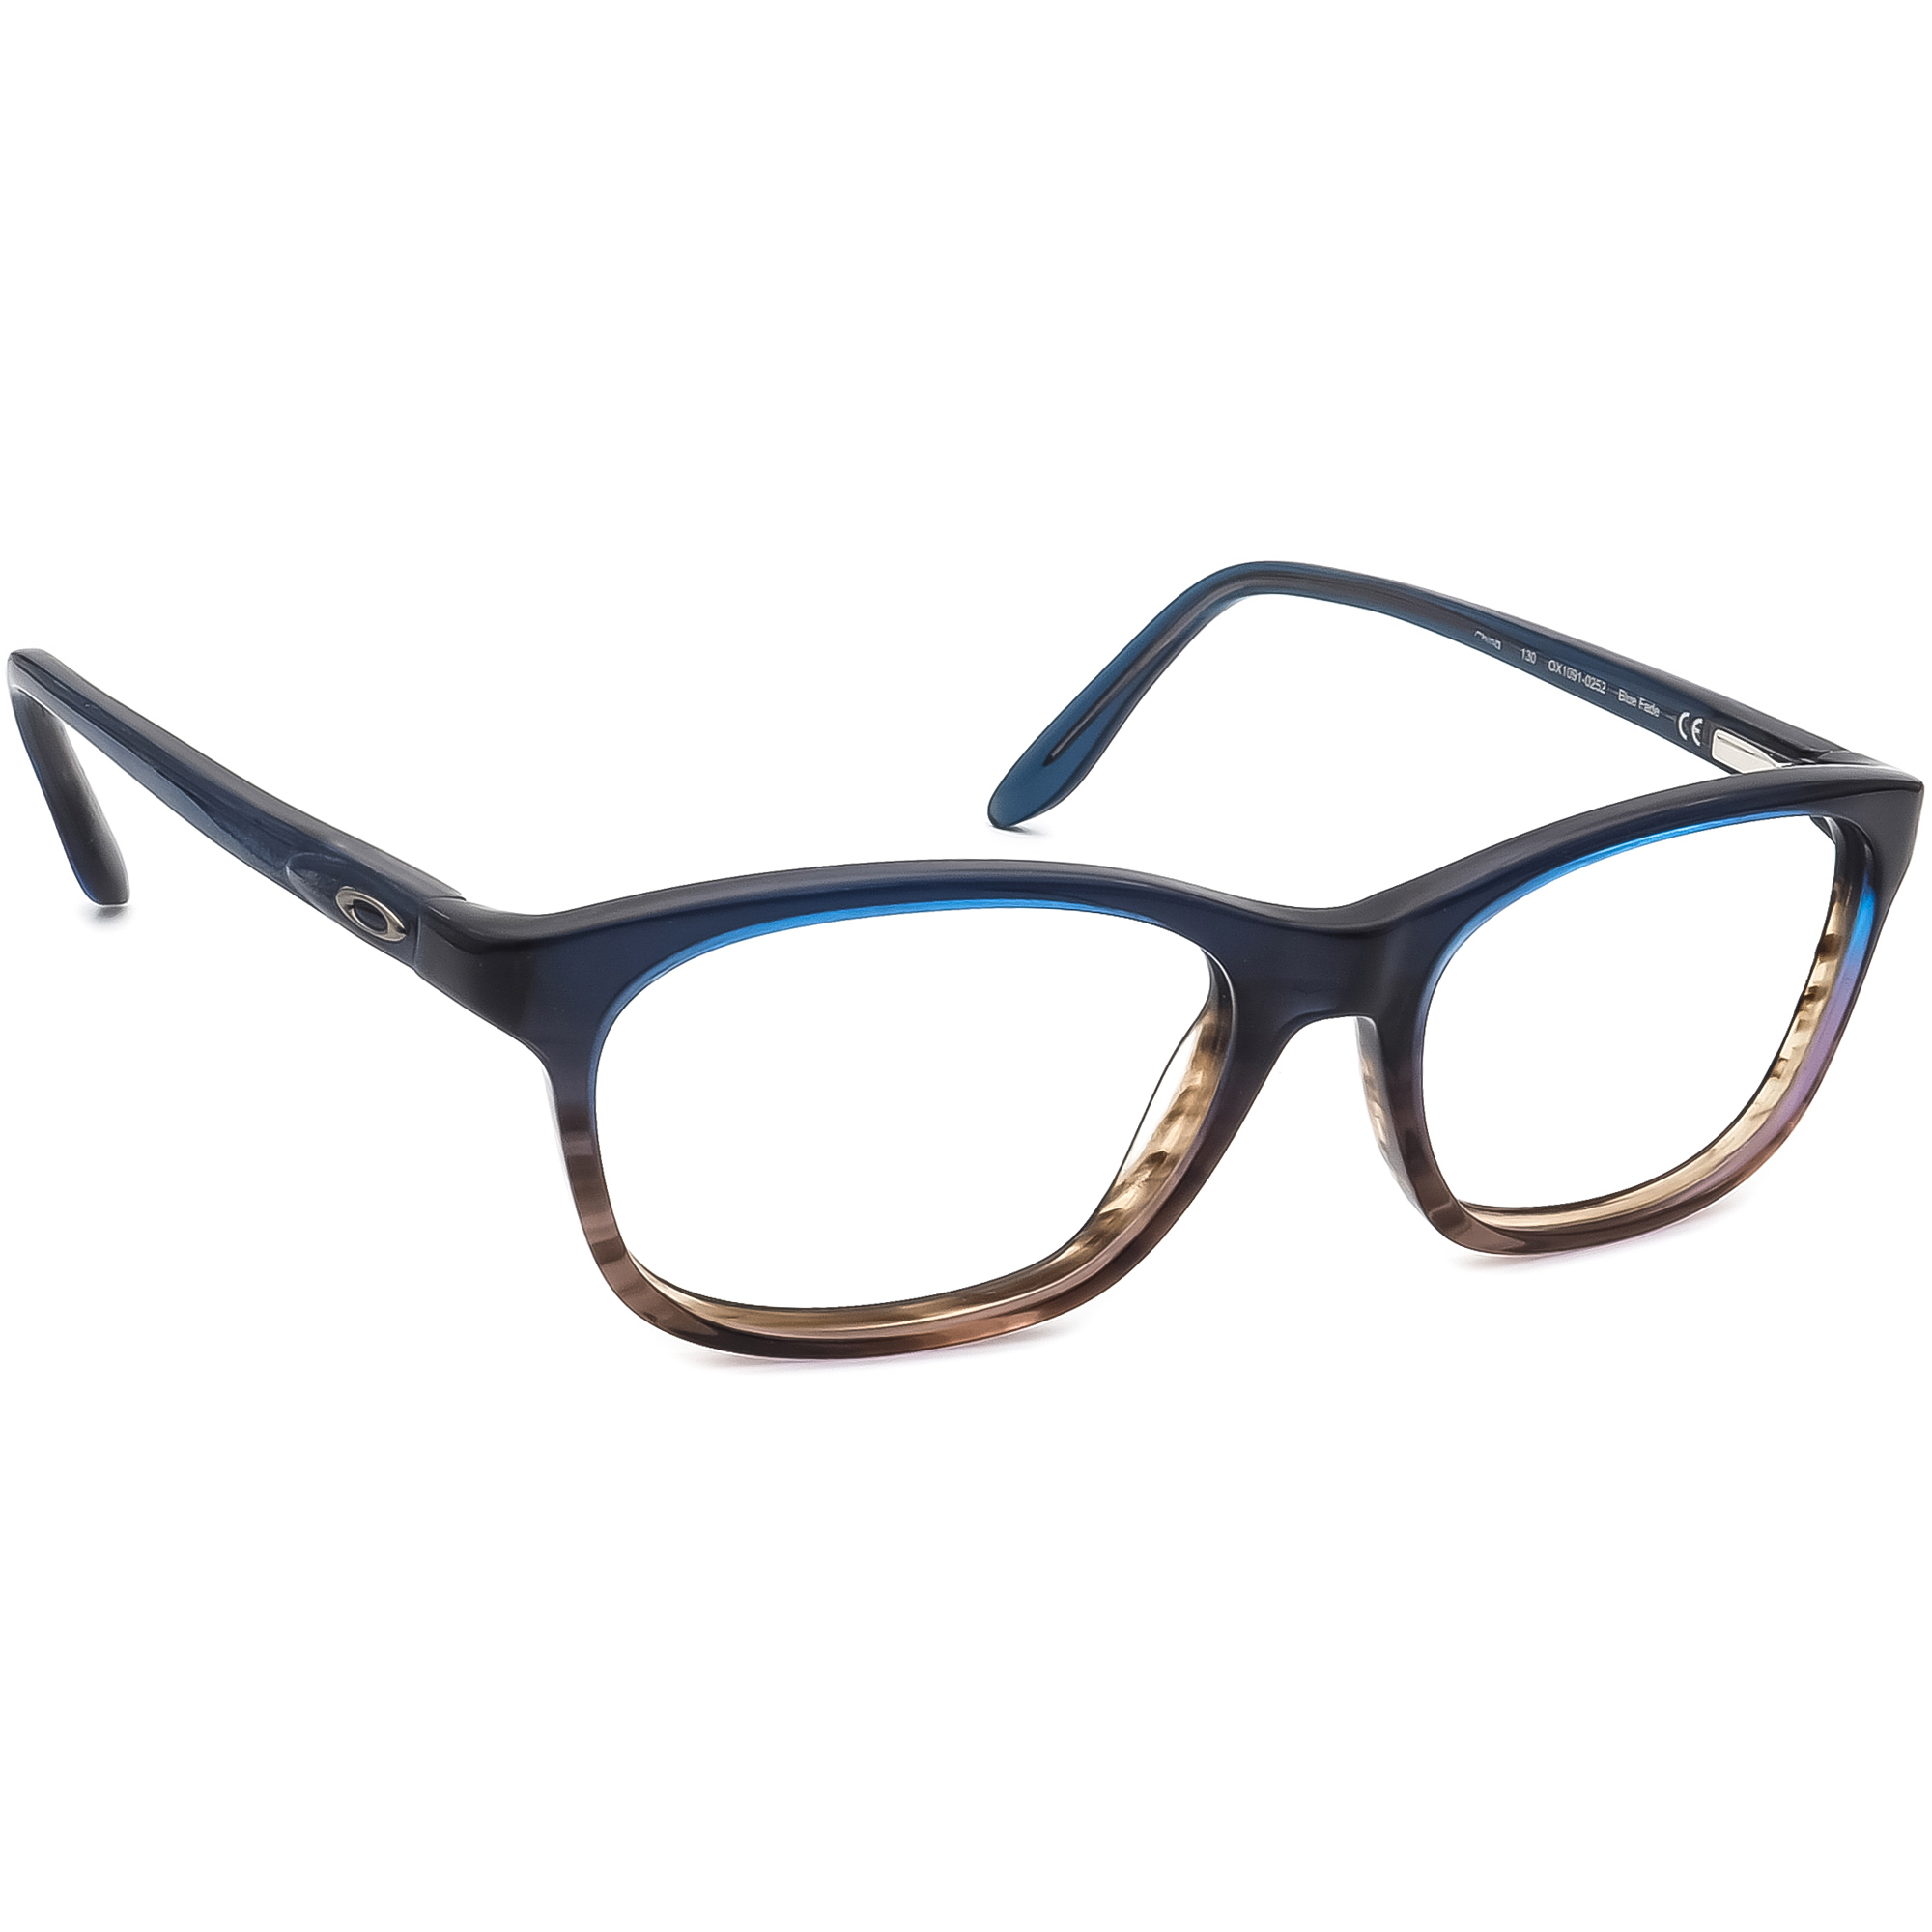 Oakley OX1091-0252 Eyeglasses